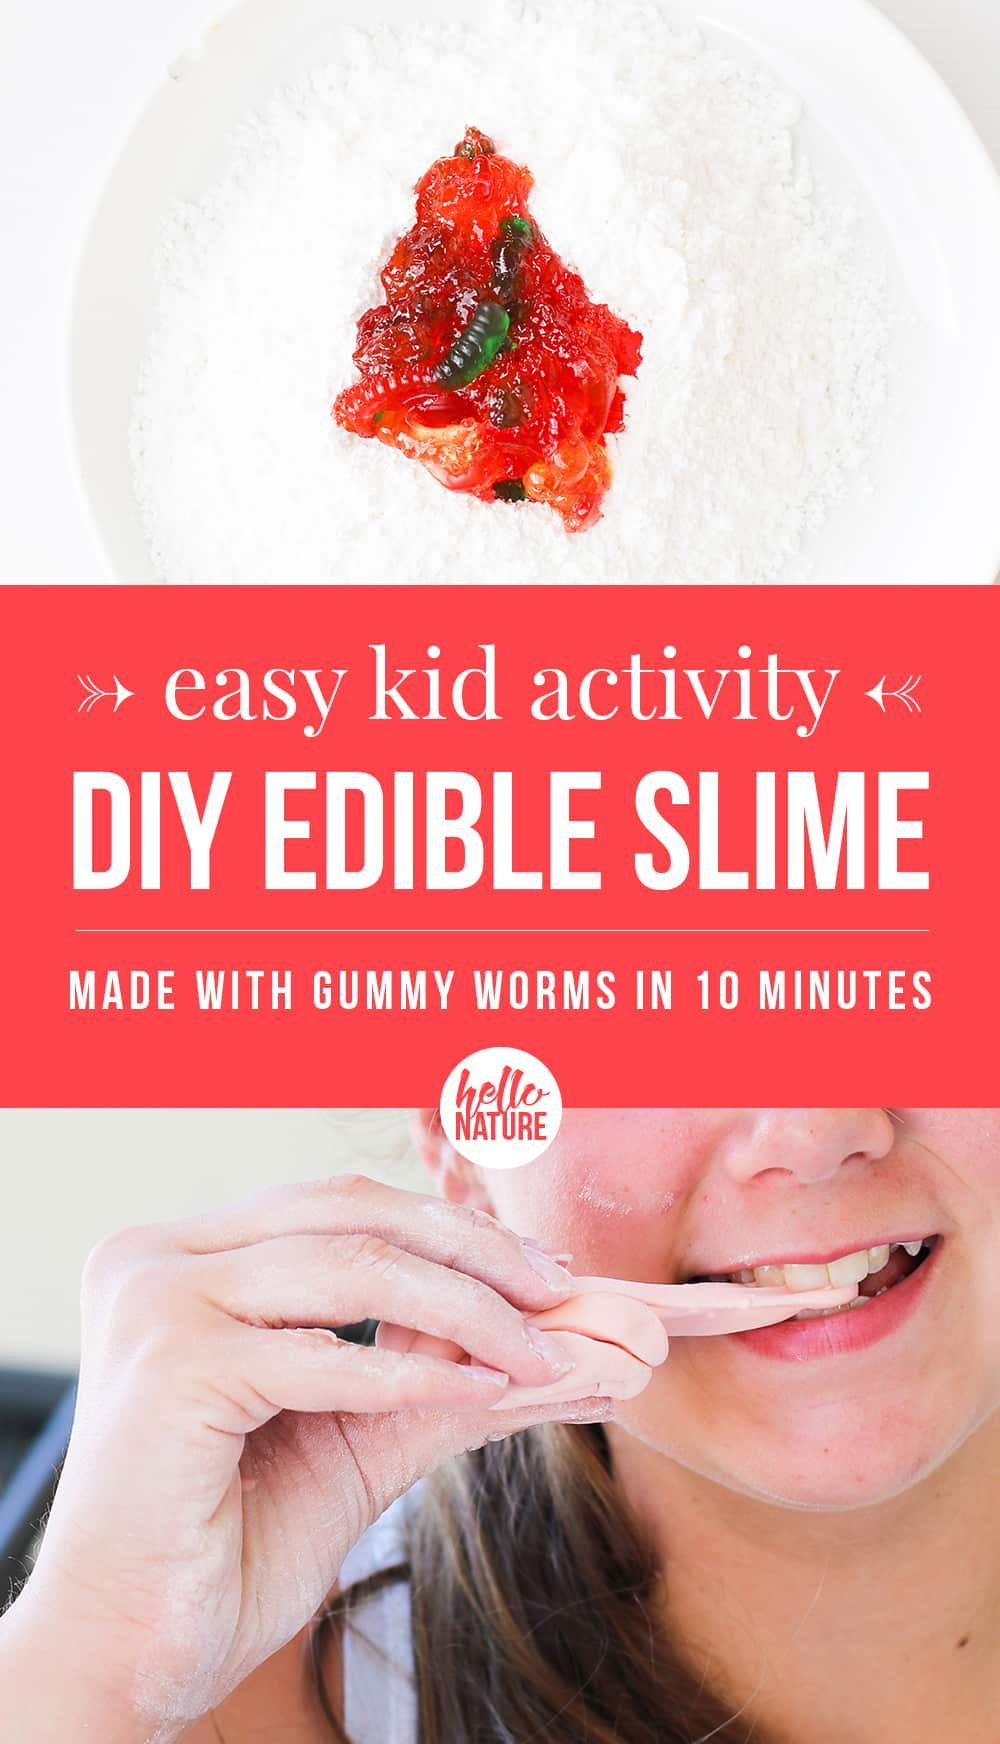 Edible slime is easy to make with just a few ingredients. Learn how to make this easy slime recipe in less than 10 minutes. Gummy worm lovers can't miss this fun kid activity! #EdibleSlime #SlimeDIY #EdibleCrafts #ToddlerActivities #KidActivities #IndoorKidActivities #RainyDayActivities #3Ingredients #Slime